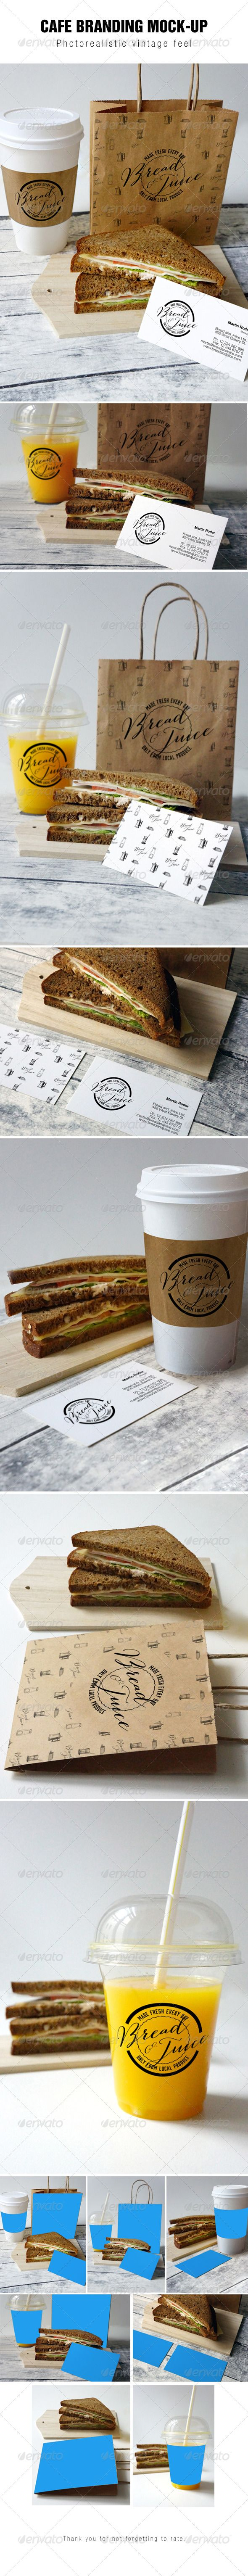 Sandwich Cafe Mockup. This is a set of 7 photorealistic Cafe branding mockups vol2. Including business cards, juice cup, coffee cup and paper bag.